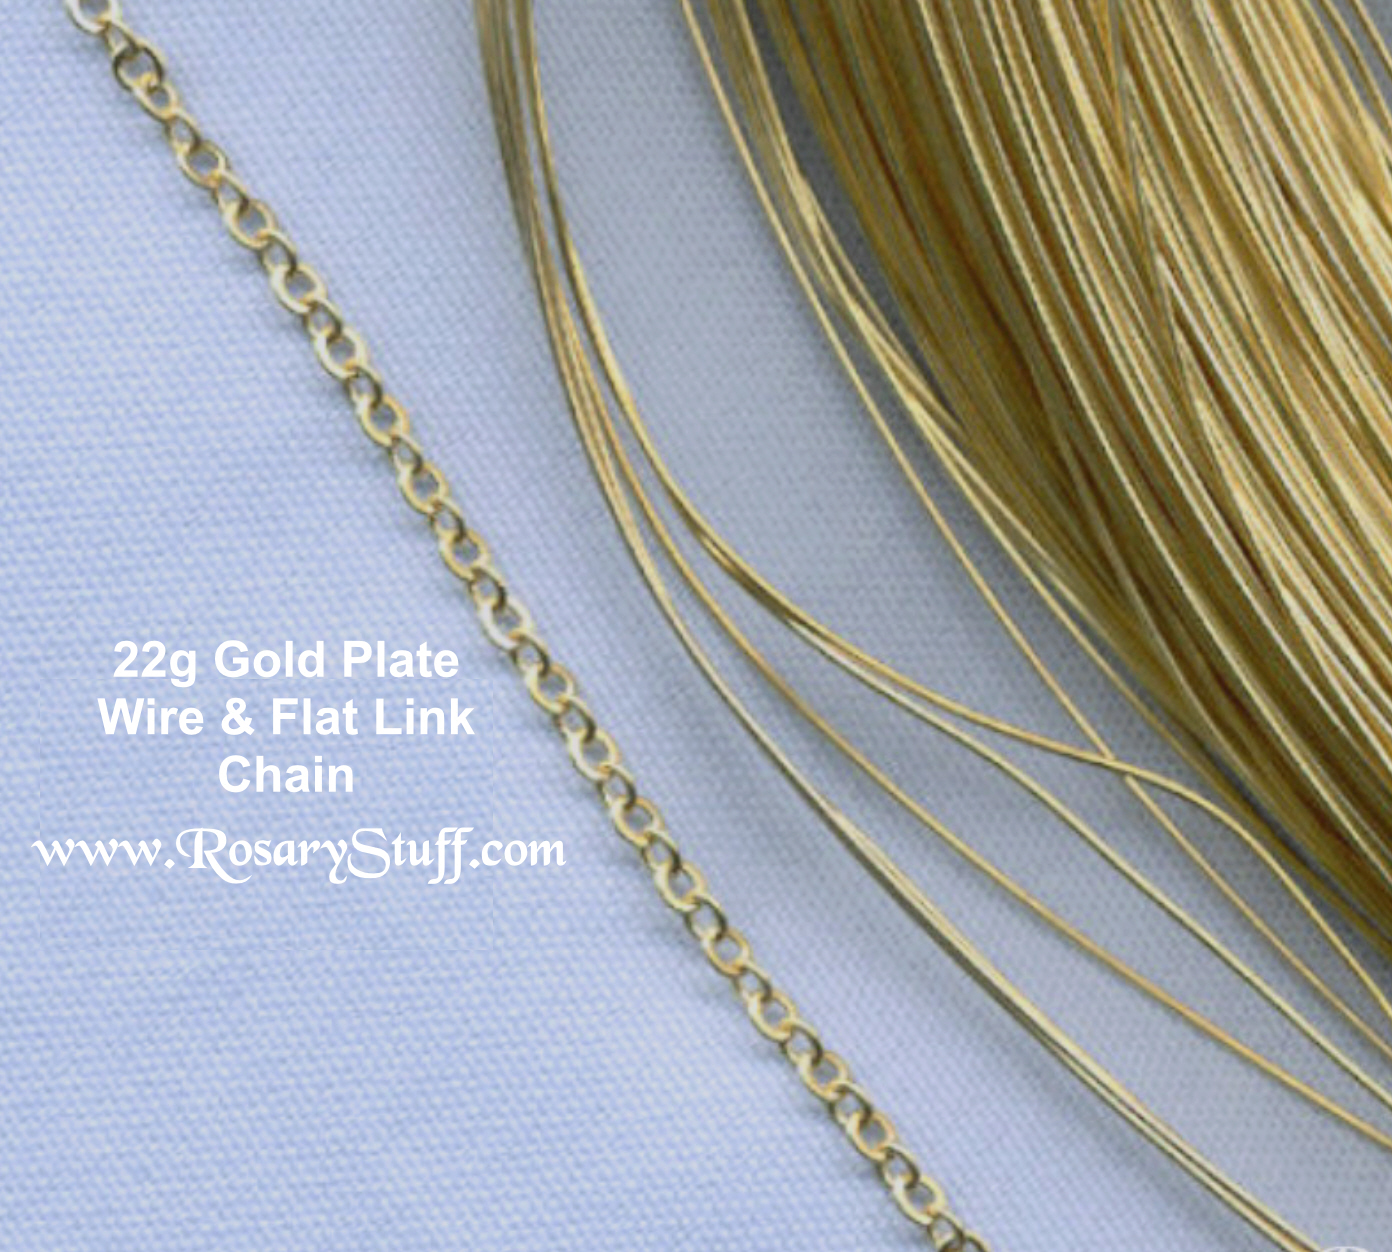 Basic Gold Plate Wire/Chain